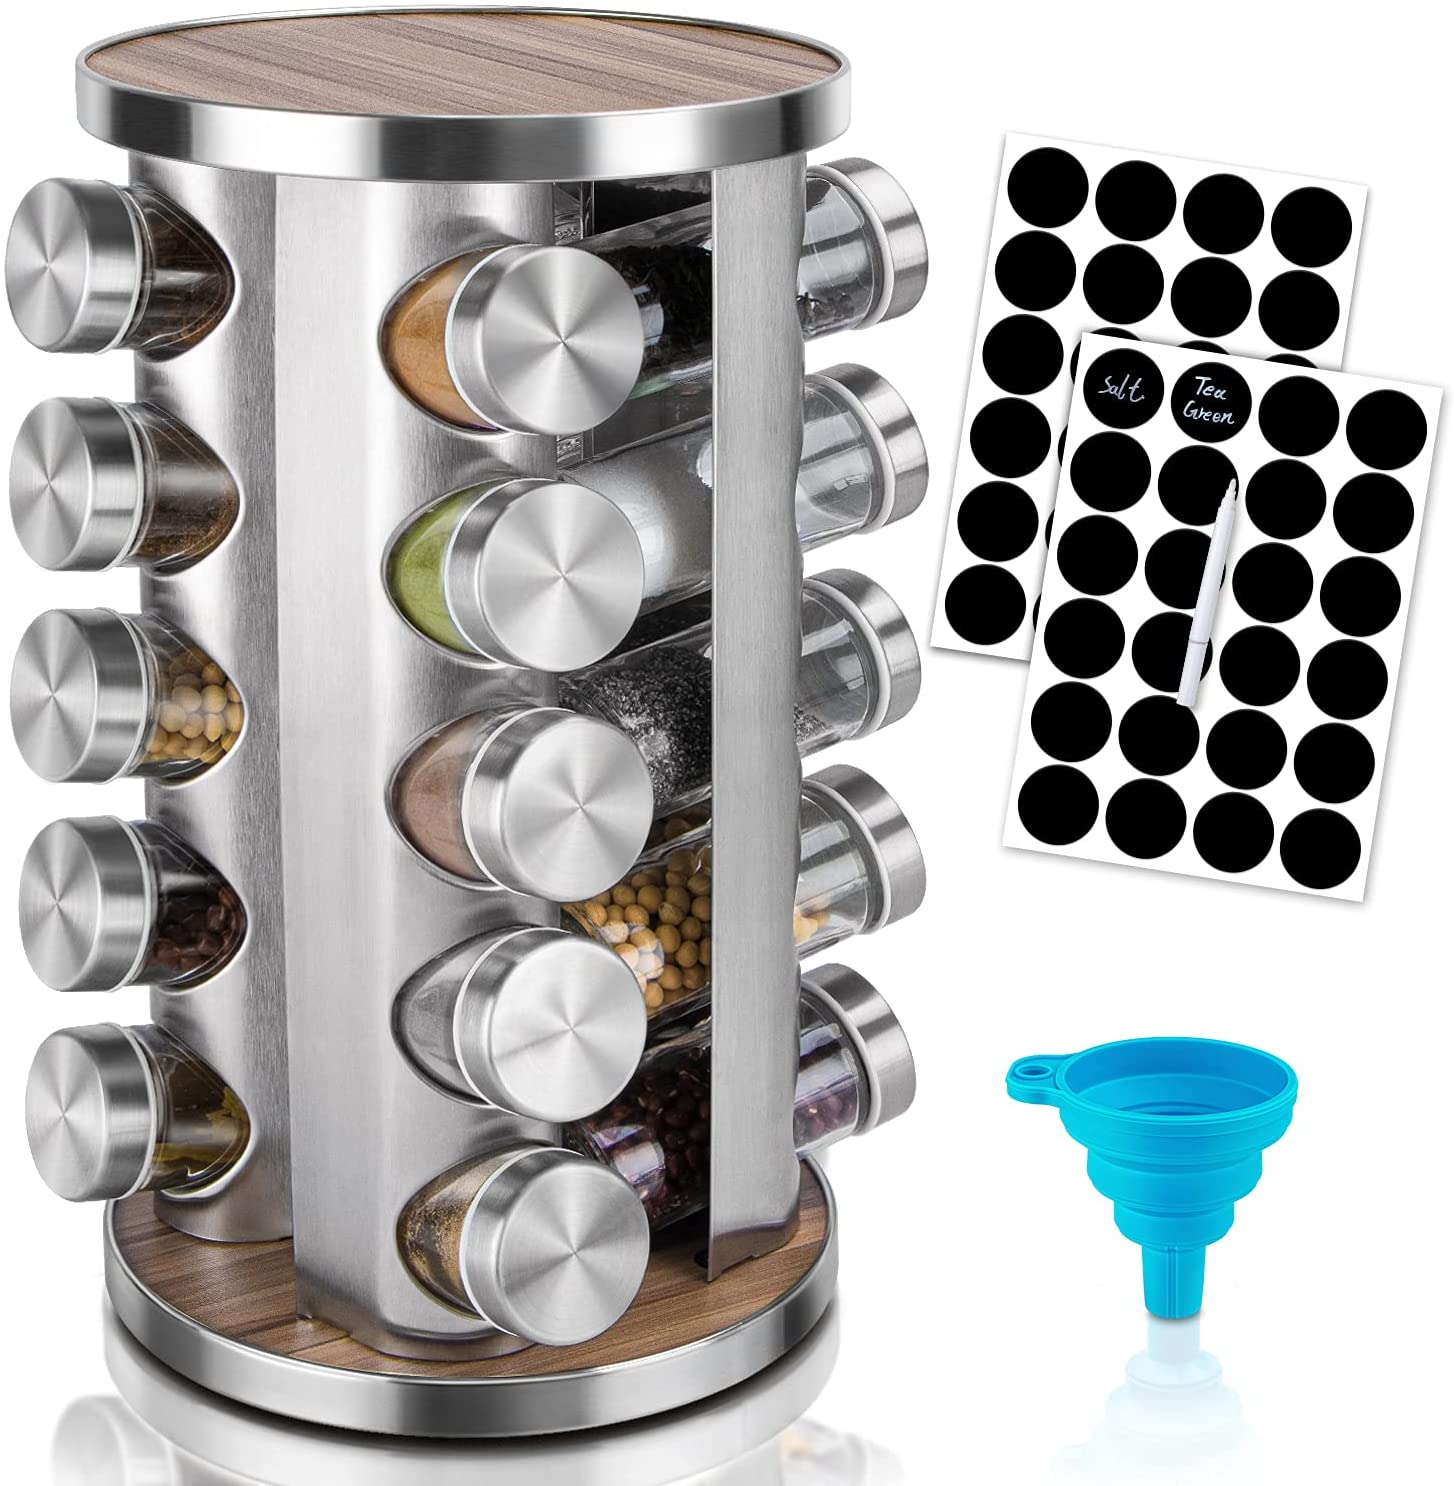 Rotating Spice Rack Organizer with Jars(20Pcs), Seasoning Organizer for Cabinet, Kitchen Spice Racks for Countertop, Revolving Farmhouse Spice Organizer : Home & Kitchen